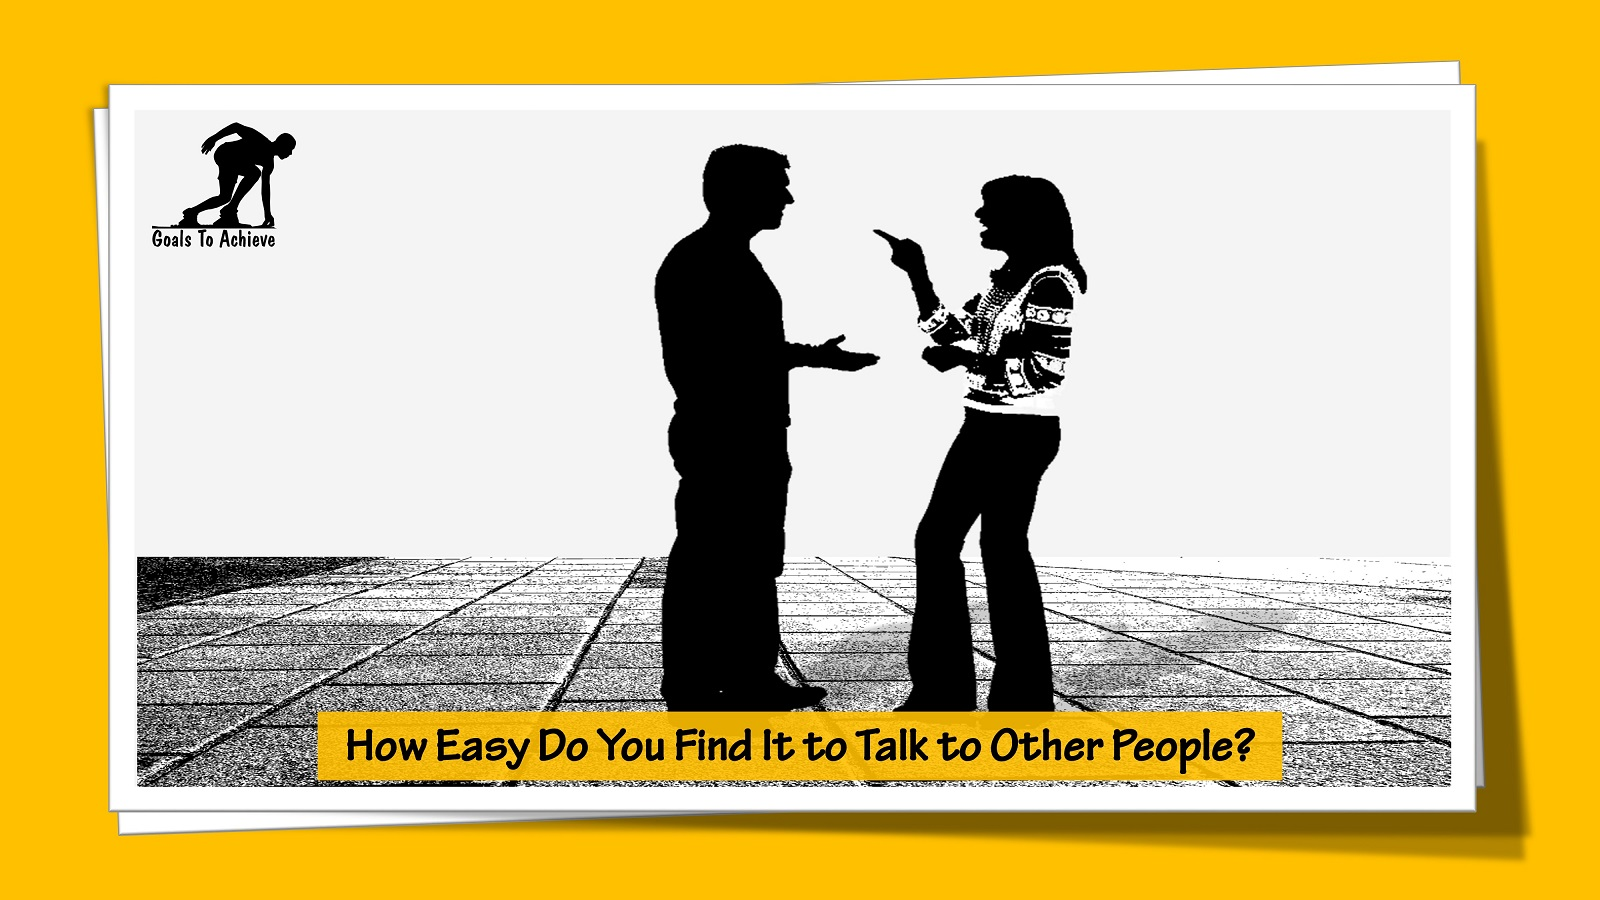 How Easy Do You Find It to Talk to Other People?